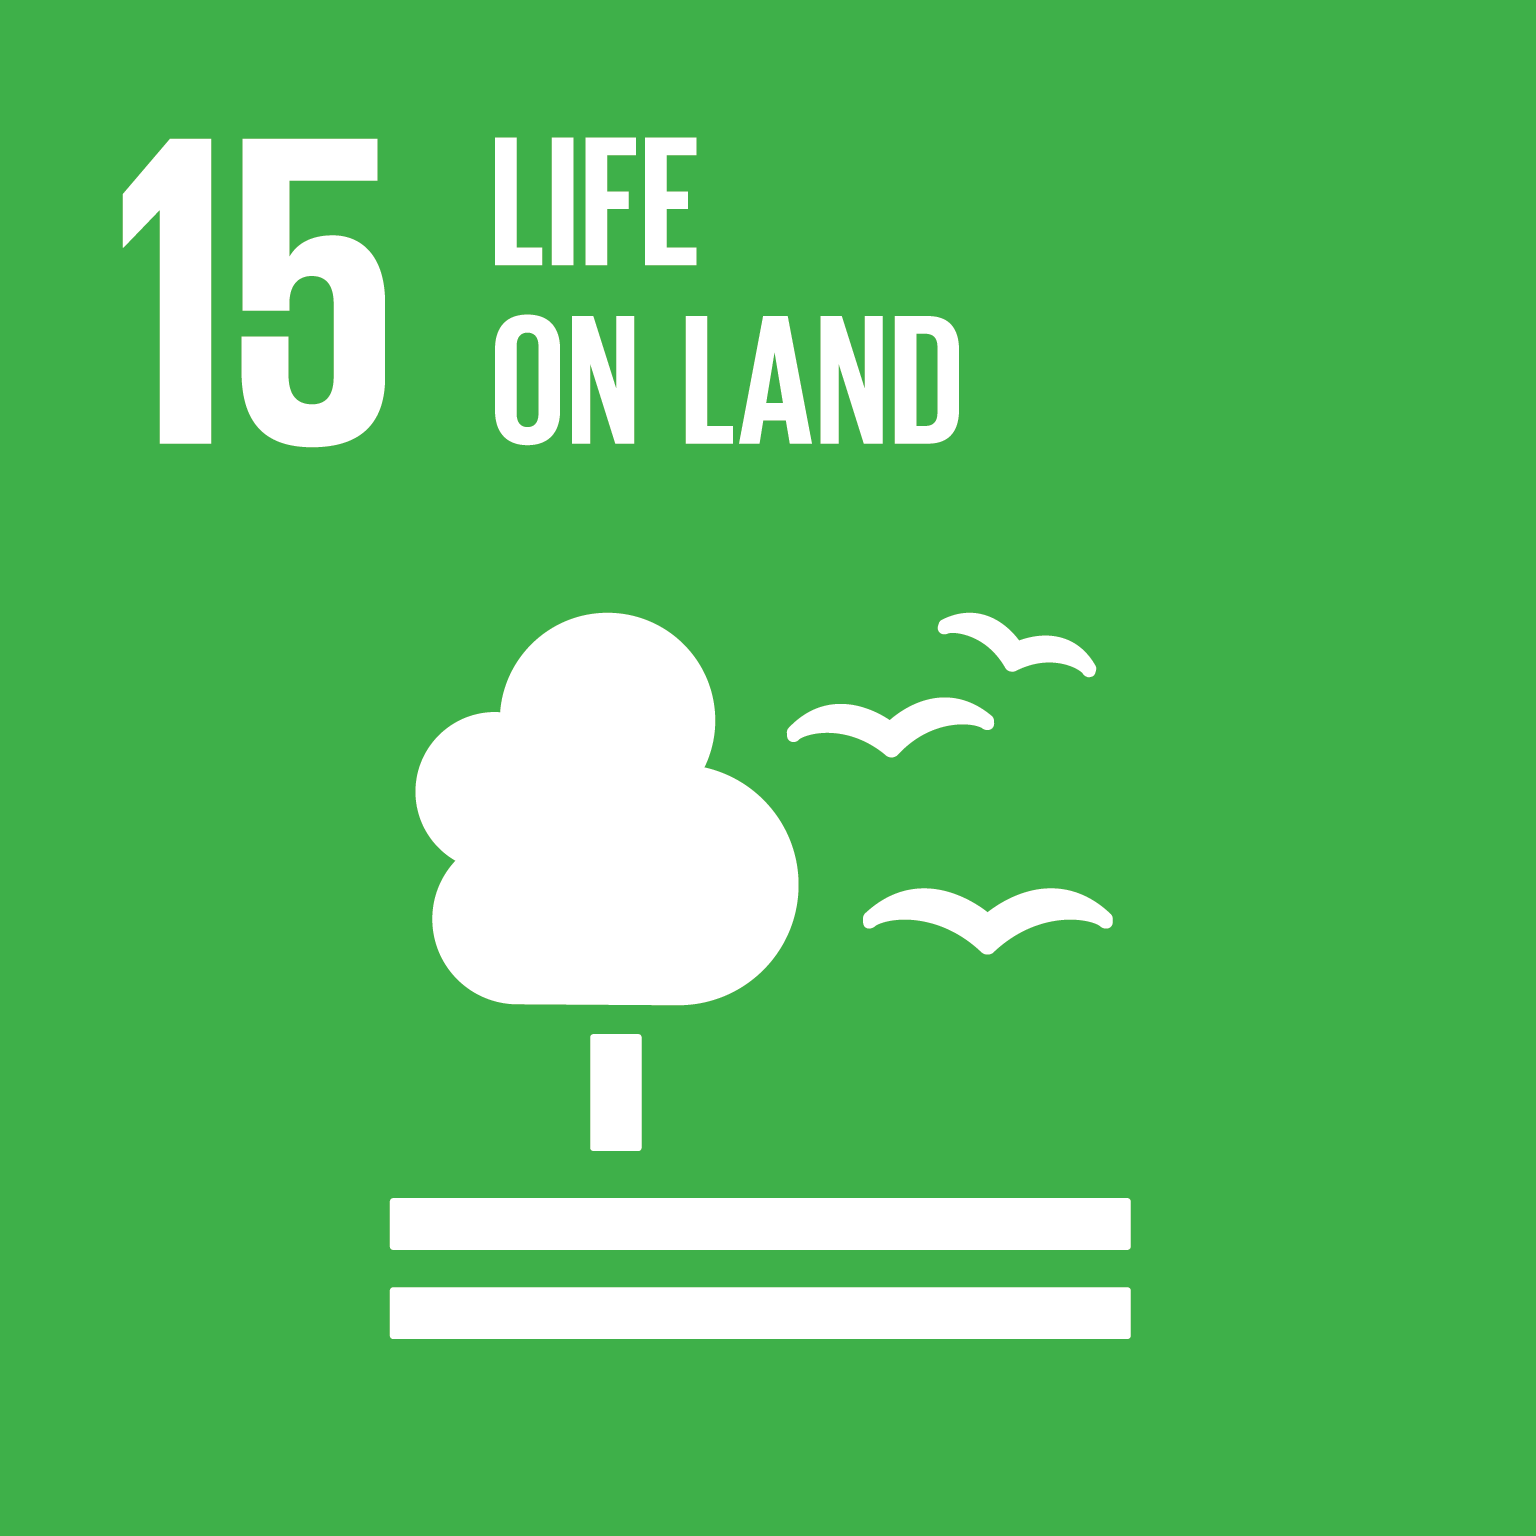 Afbeeldingsresultaat voor sustainable development goals 15